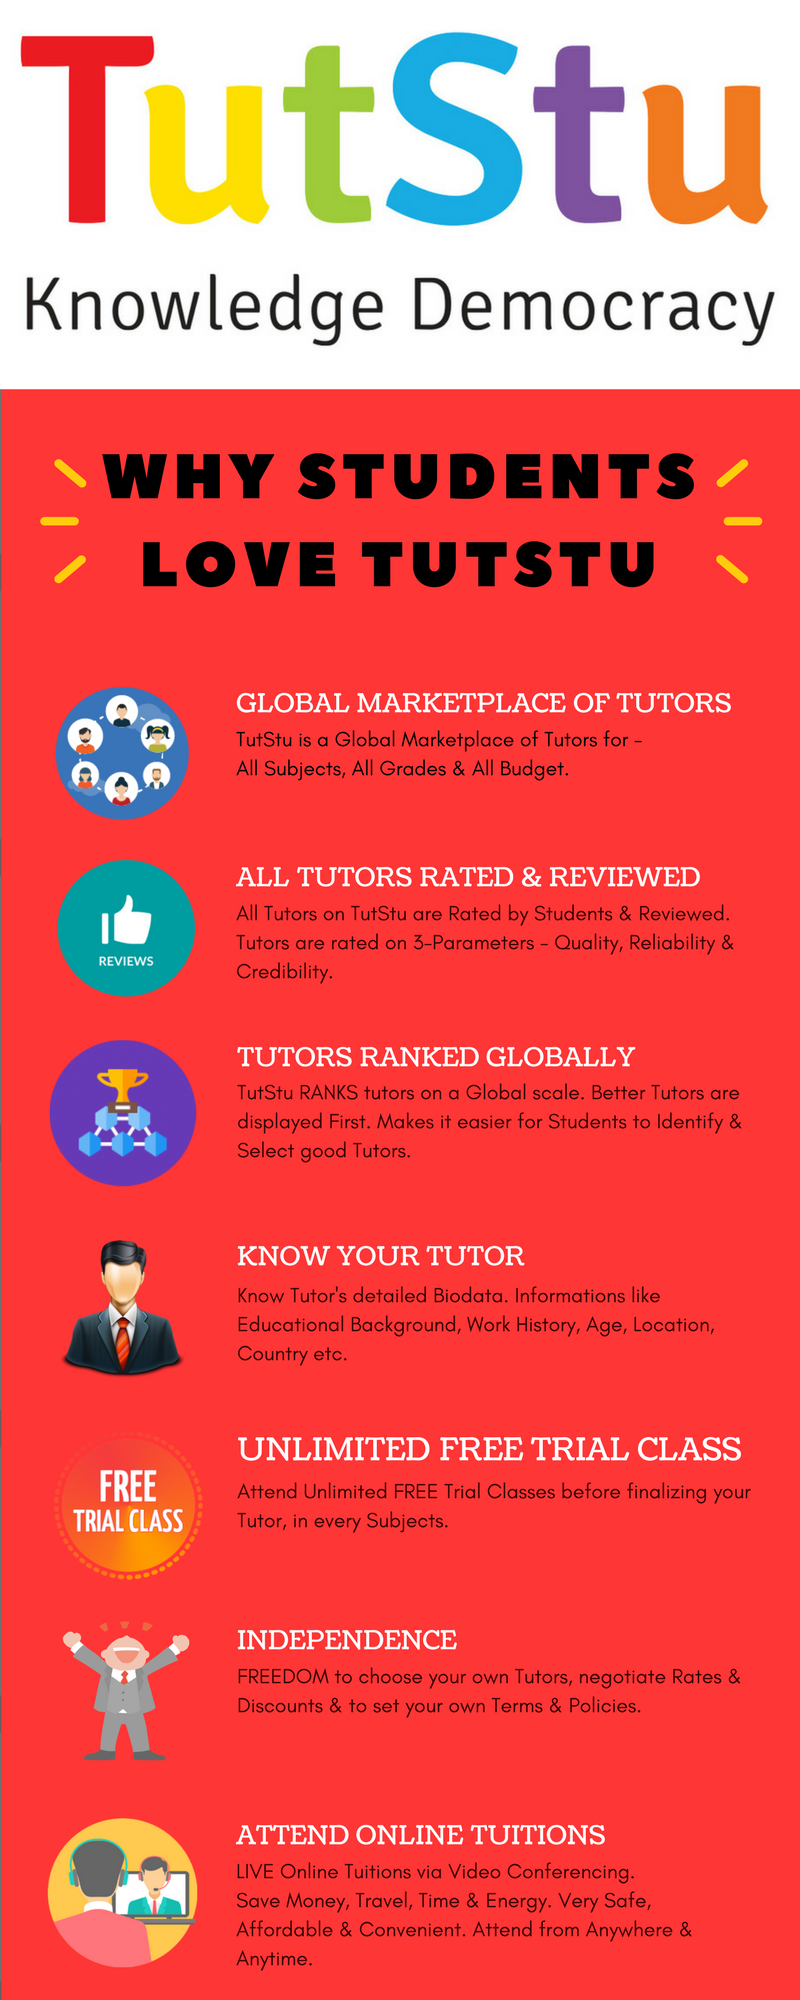 At tutstu its diy do it yourself search for online tutors in how diy online tutoring works for students how to find select best rated tutors schedule online tutoring sessions get tutoring online make payments to solutioingenieria Image collections